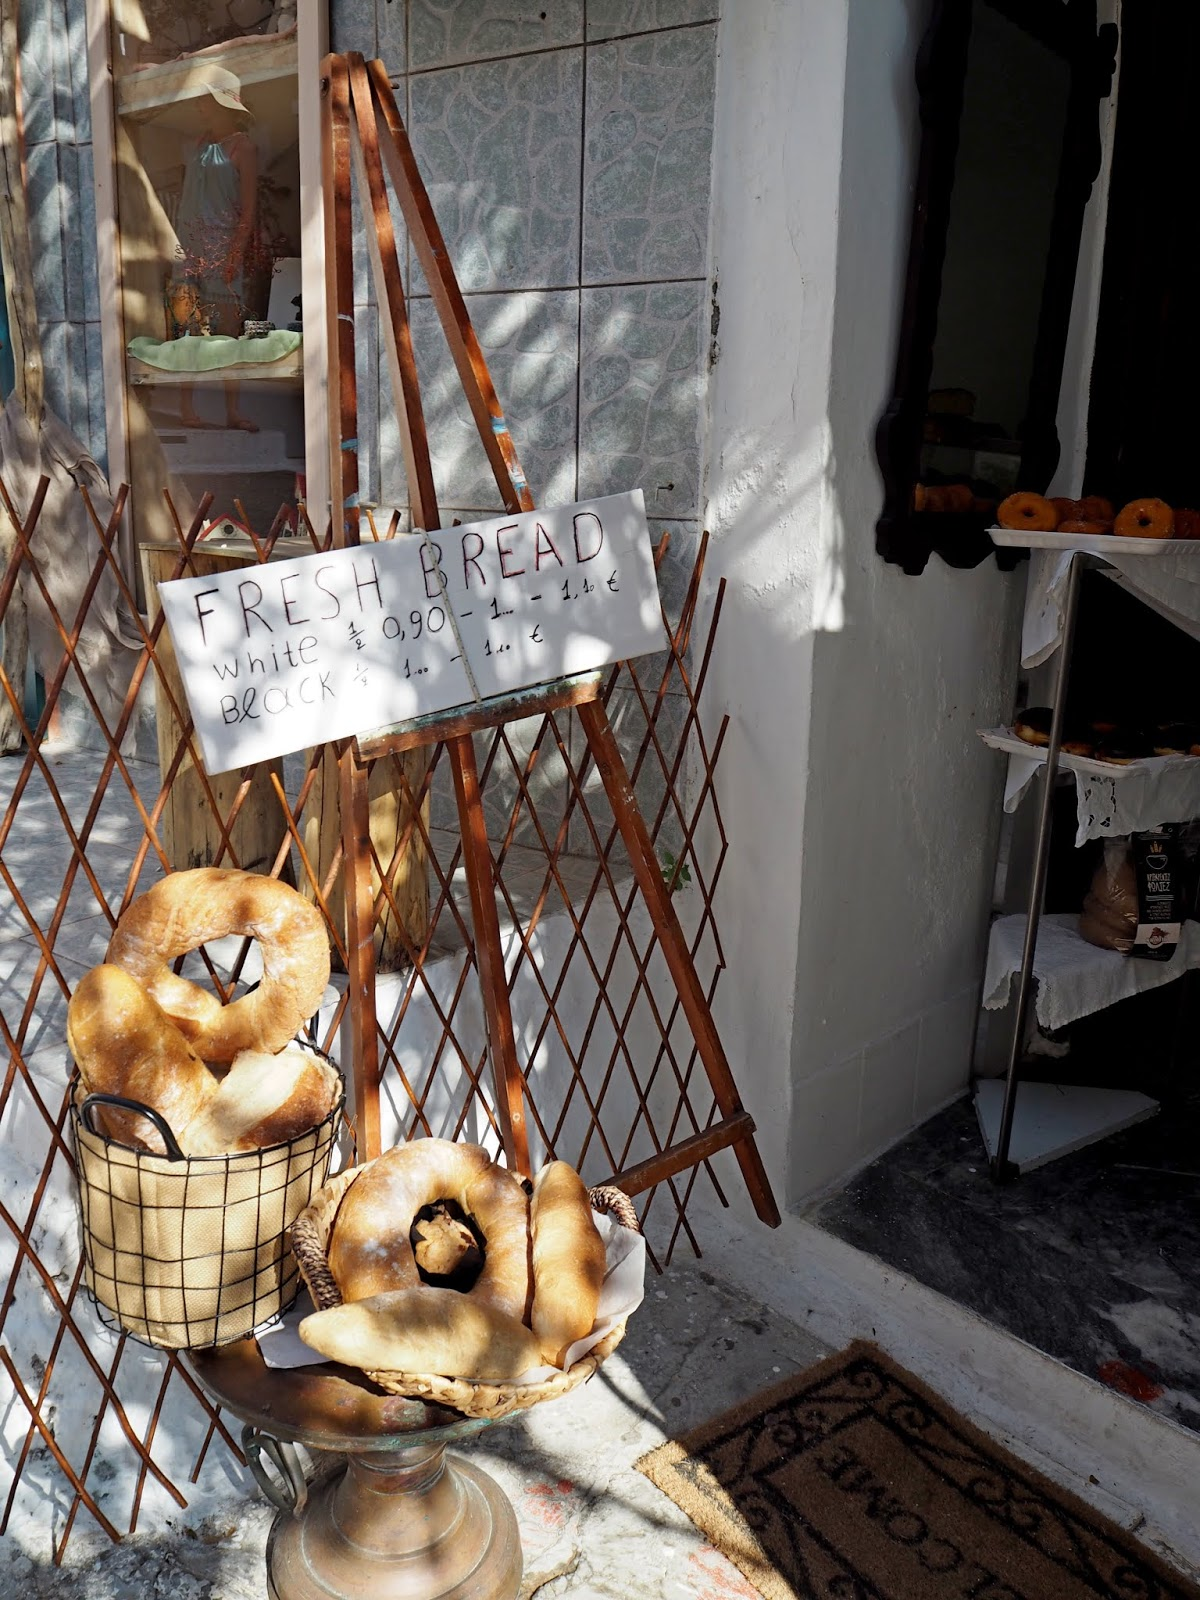 Bakery in Parga